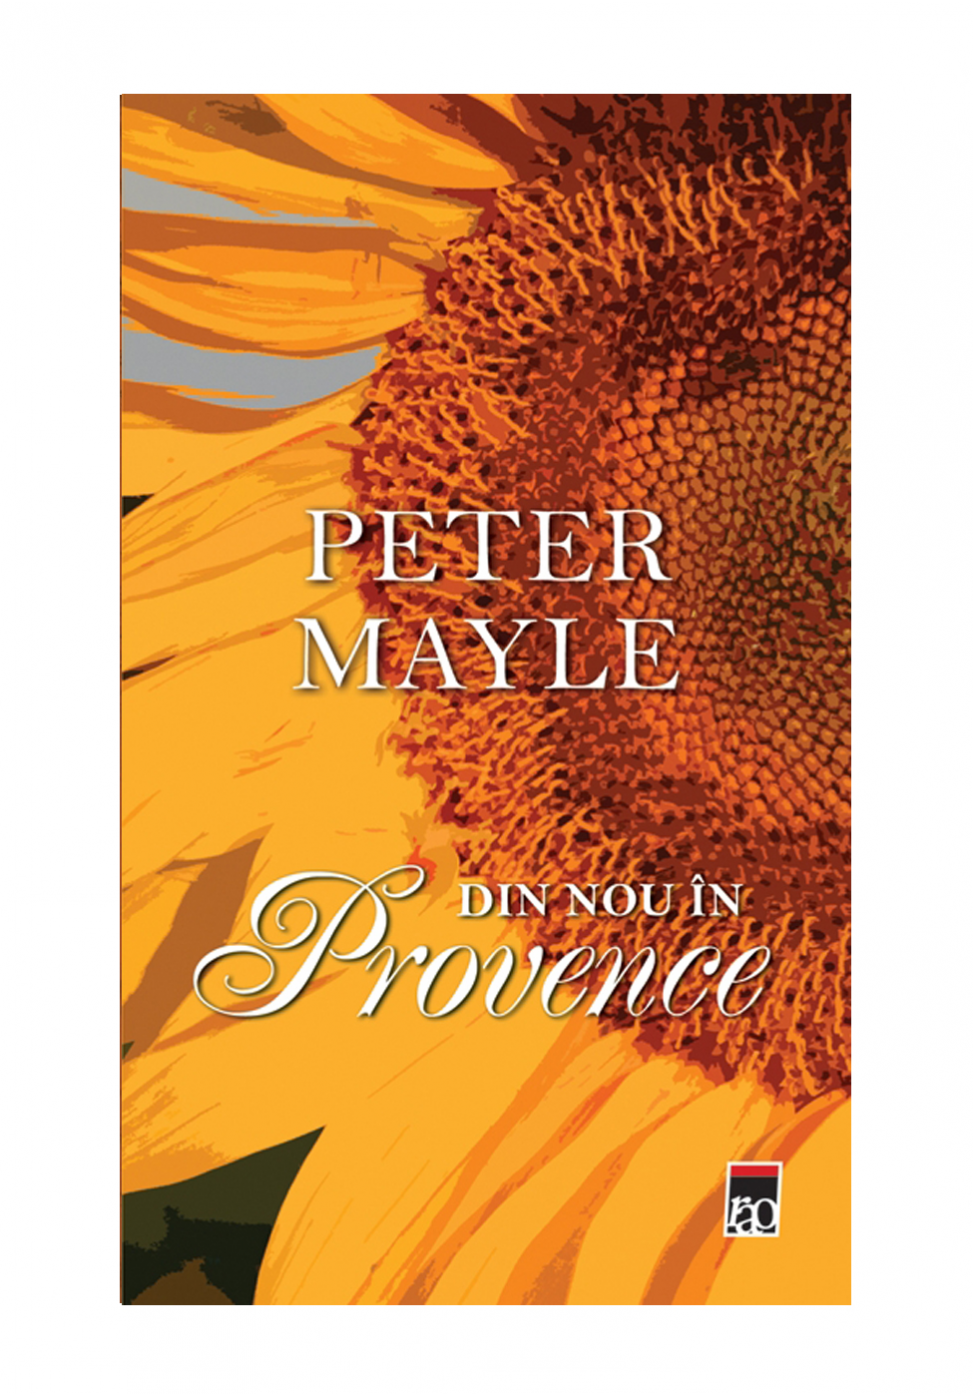 Din nou in Provence, Peter Mayle - Editura Rao